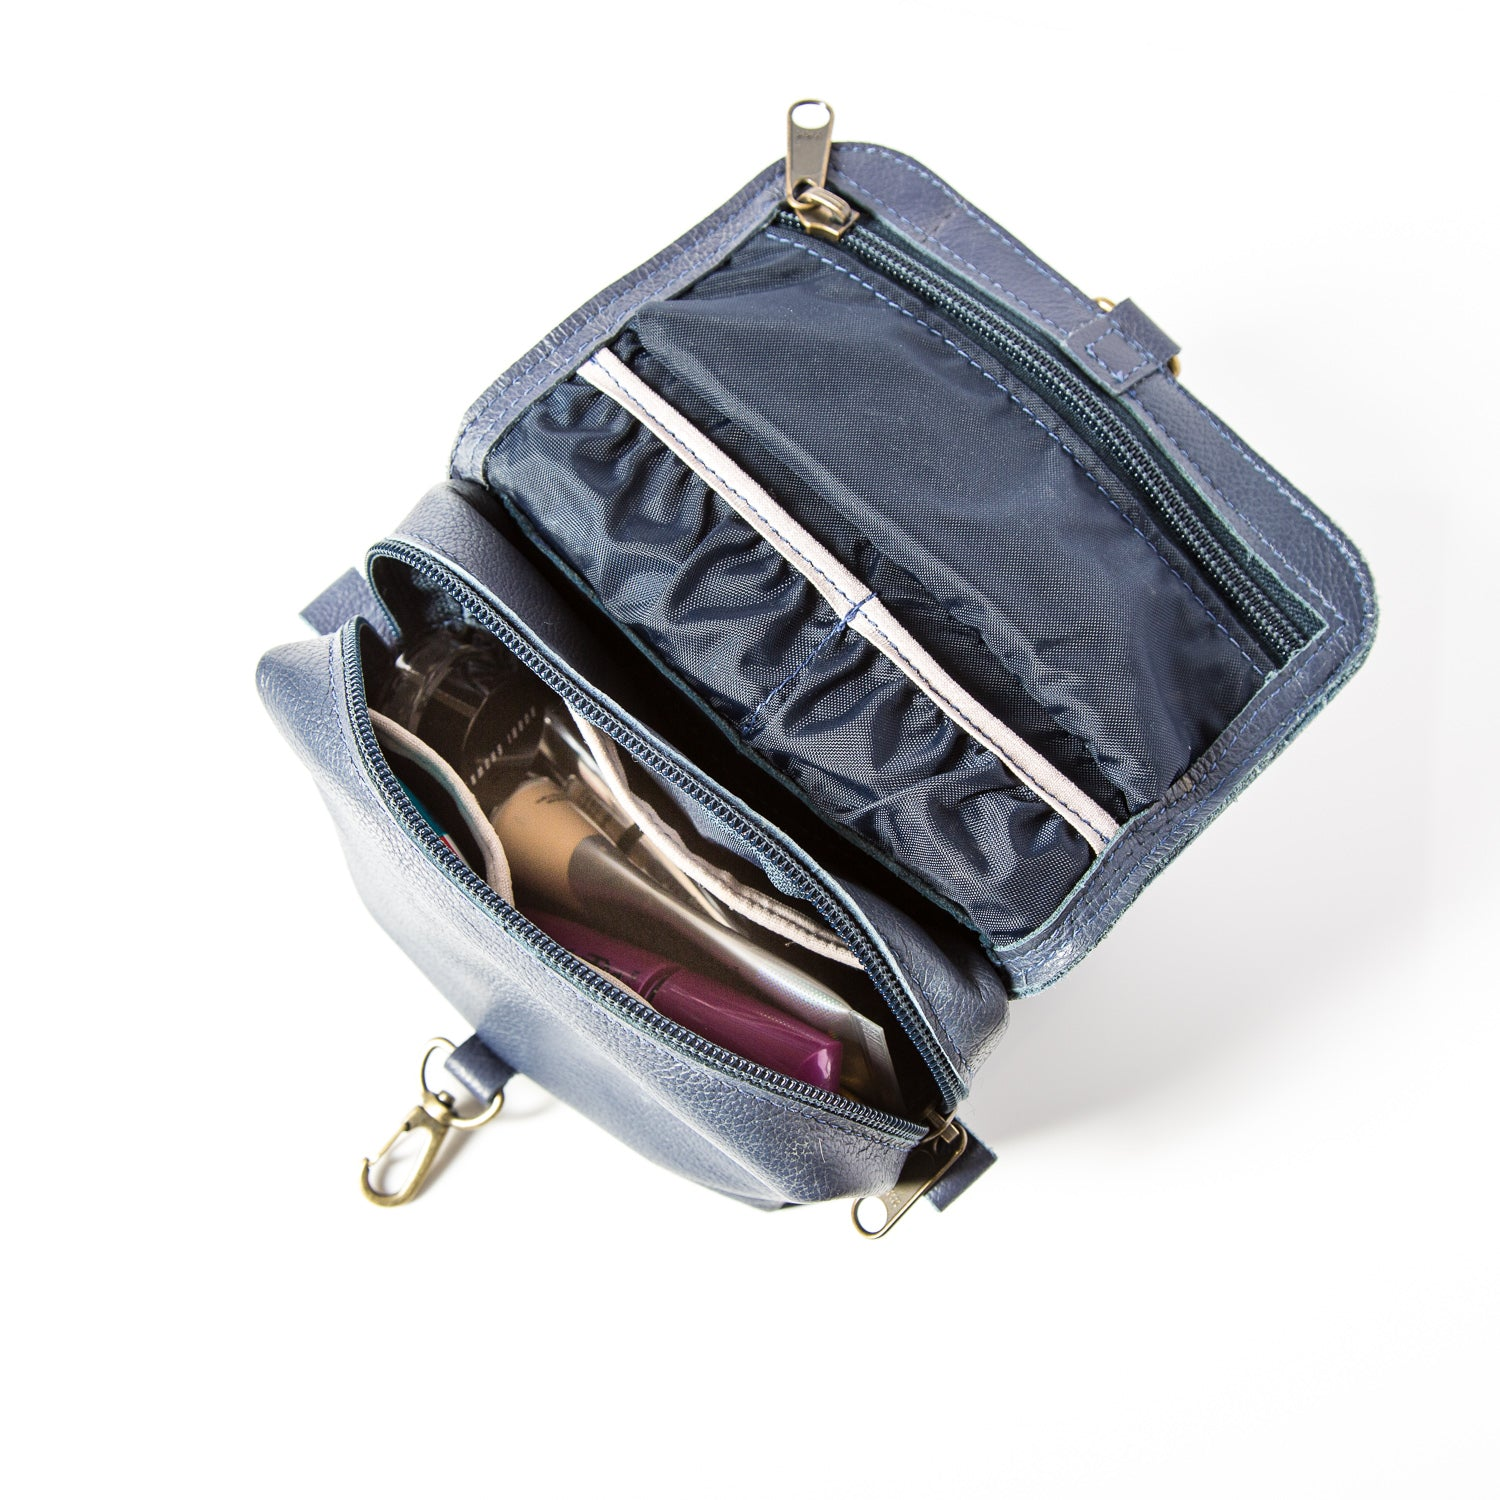 In Flight MiniLUV Dopp Kit